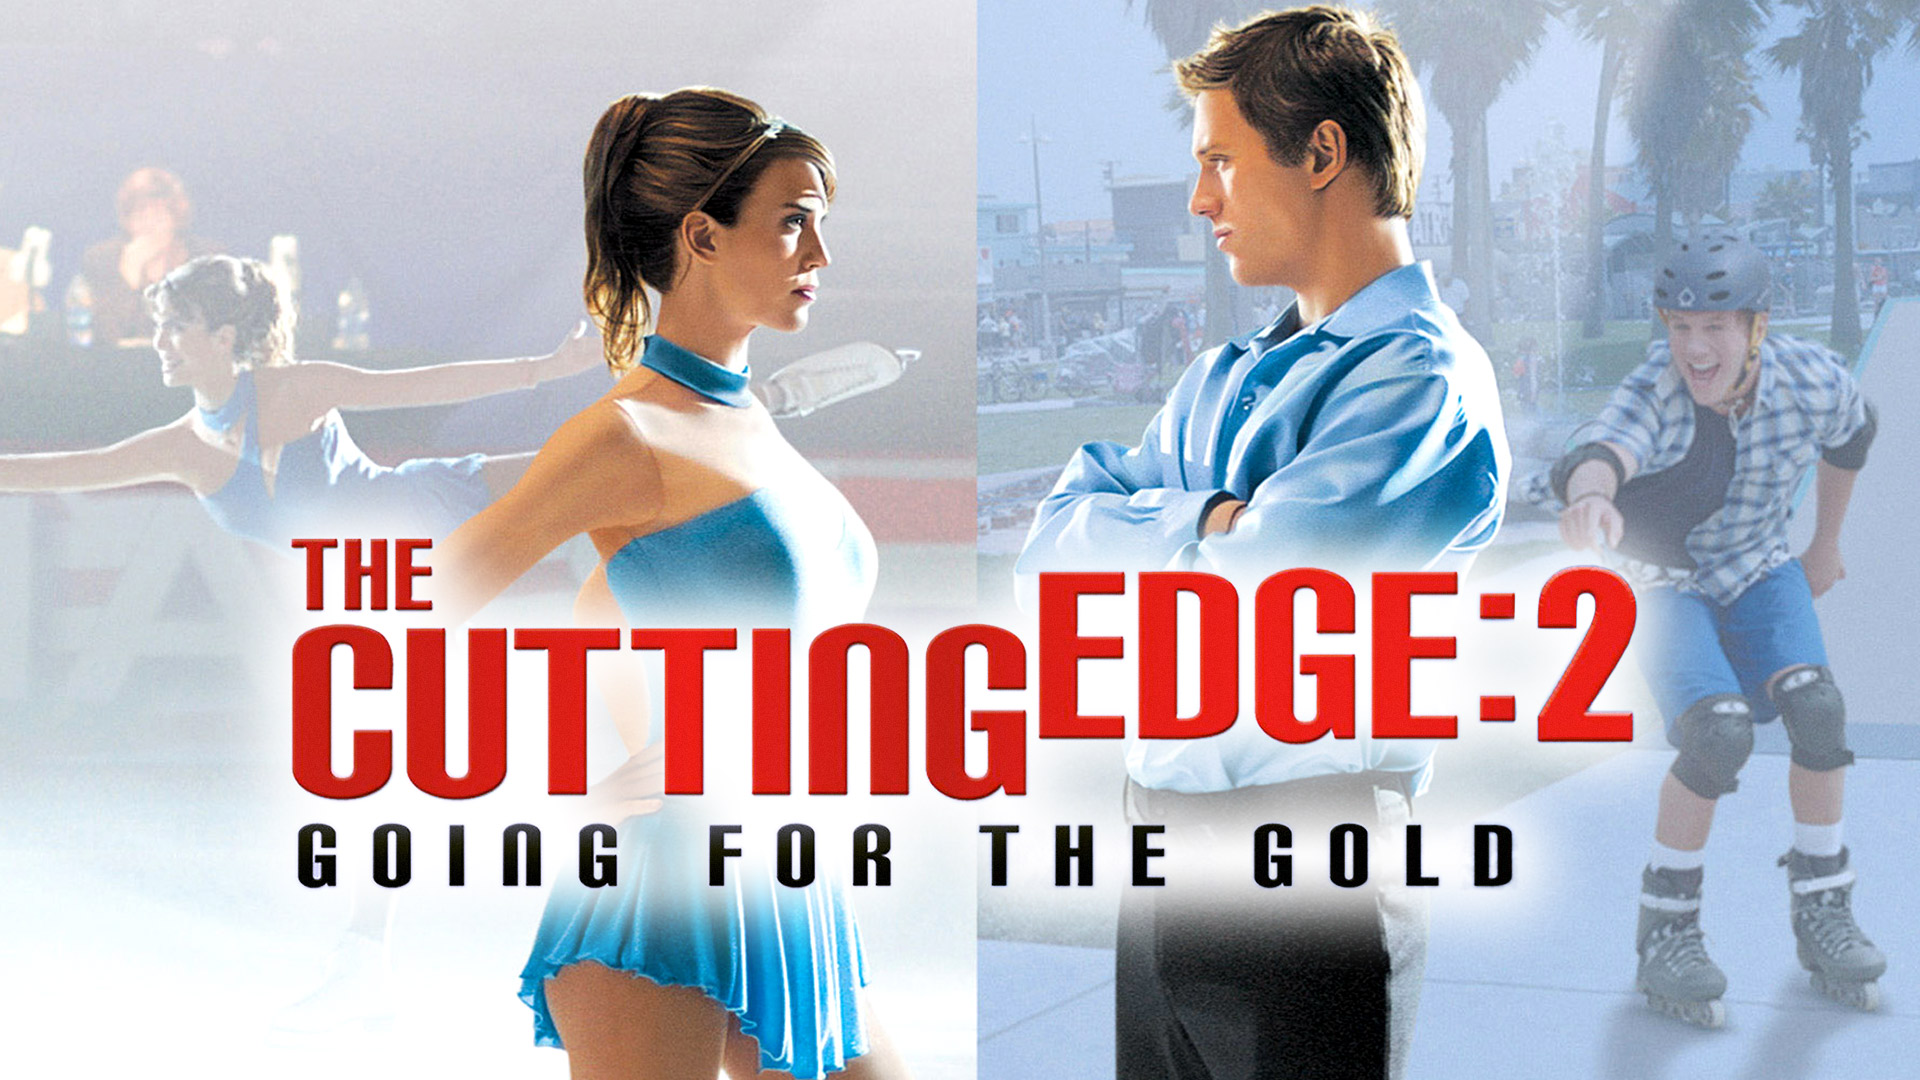 The Cutting Edge 2: Going For the Gold